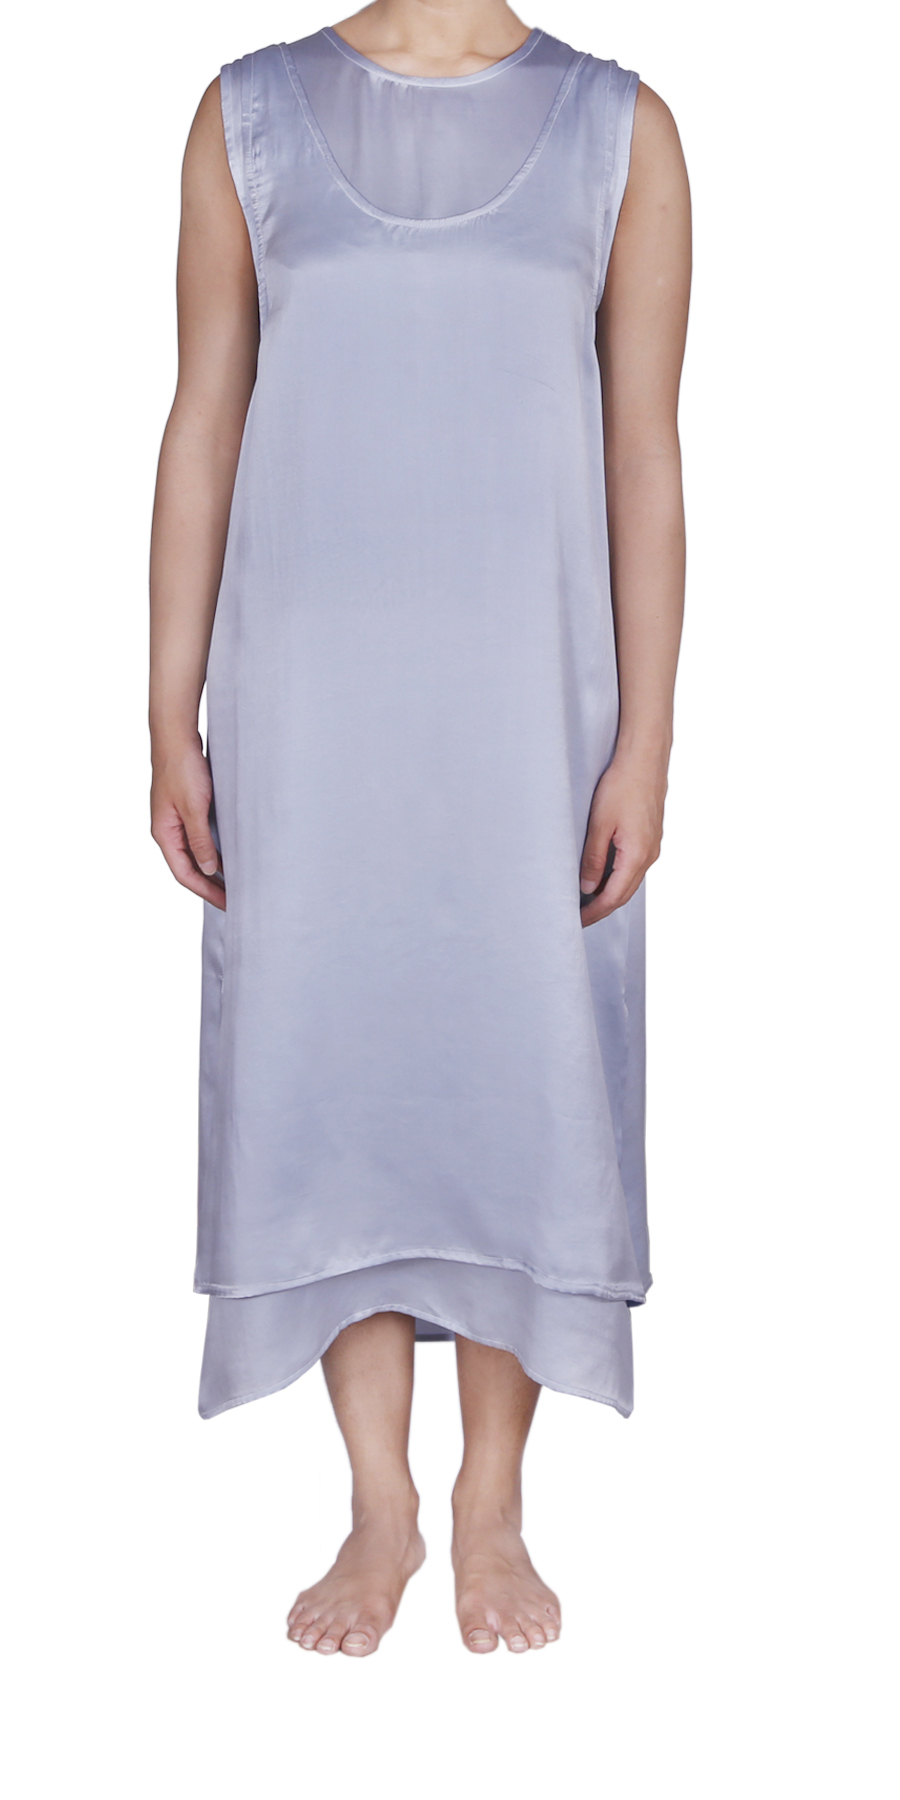 WINTER SKY SLIP DRESS